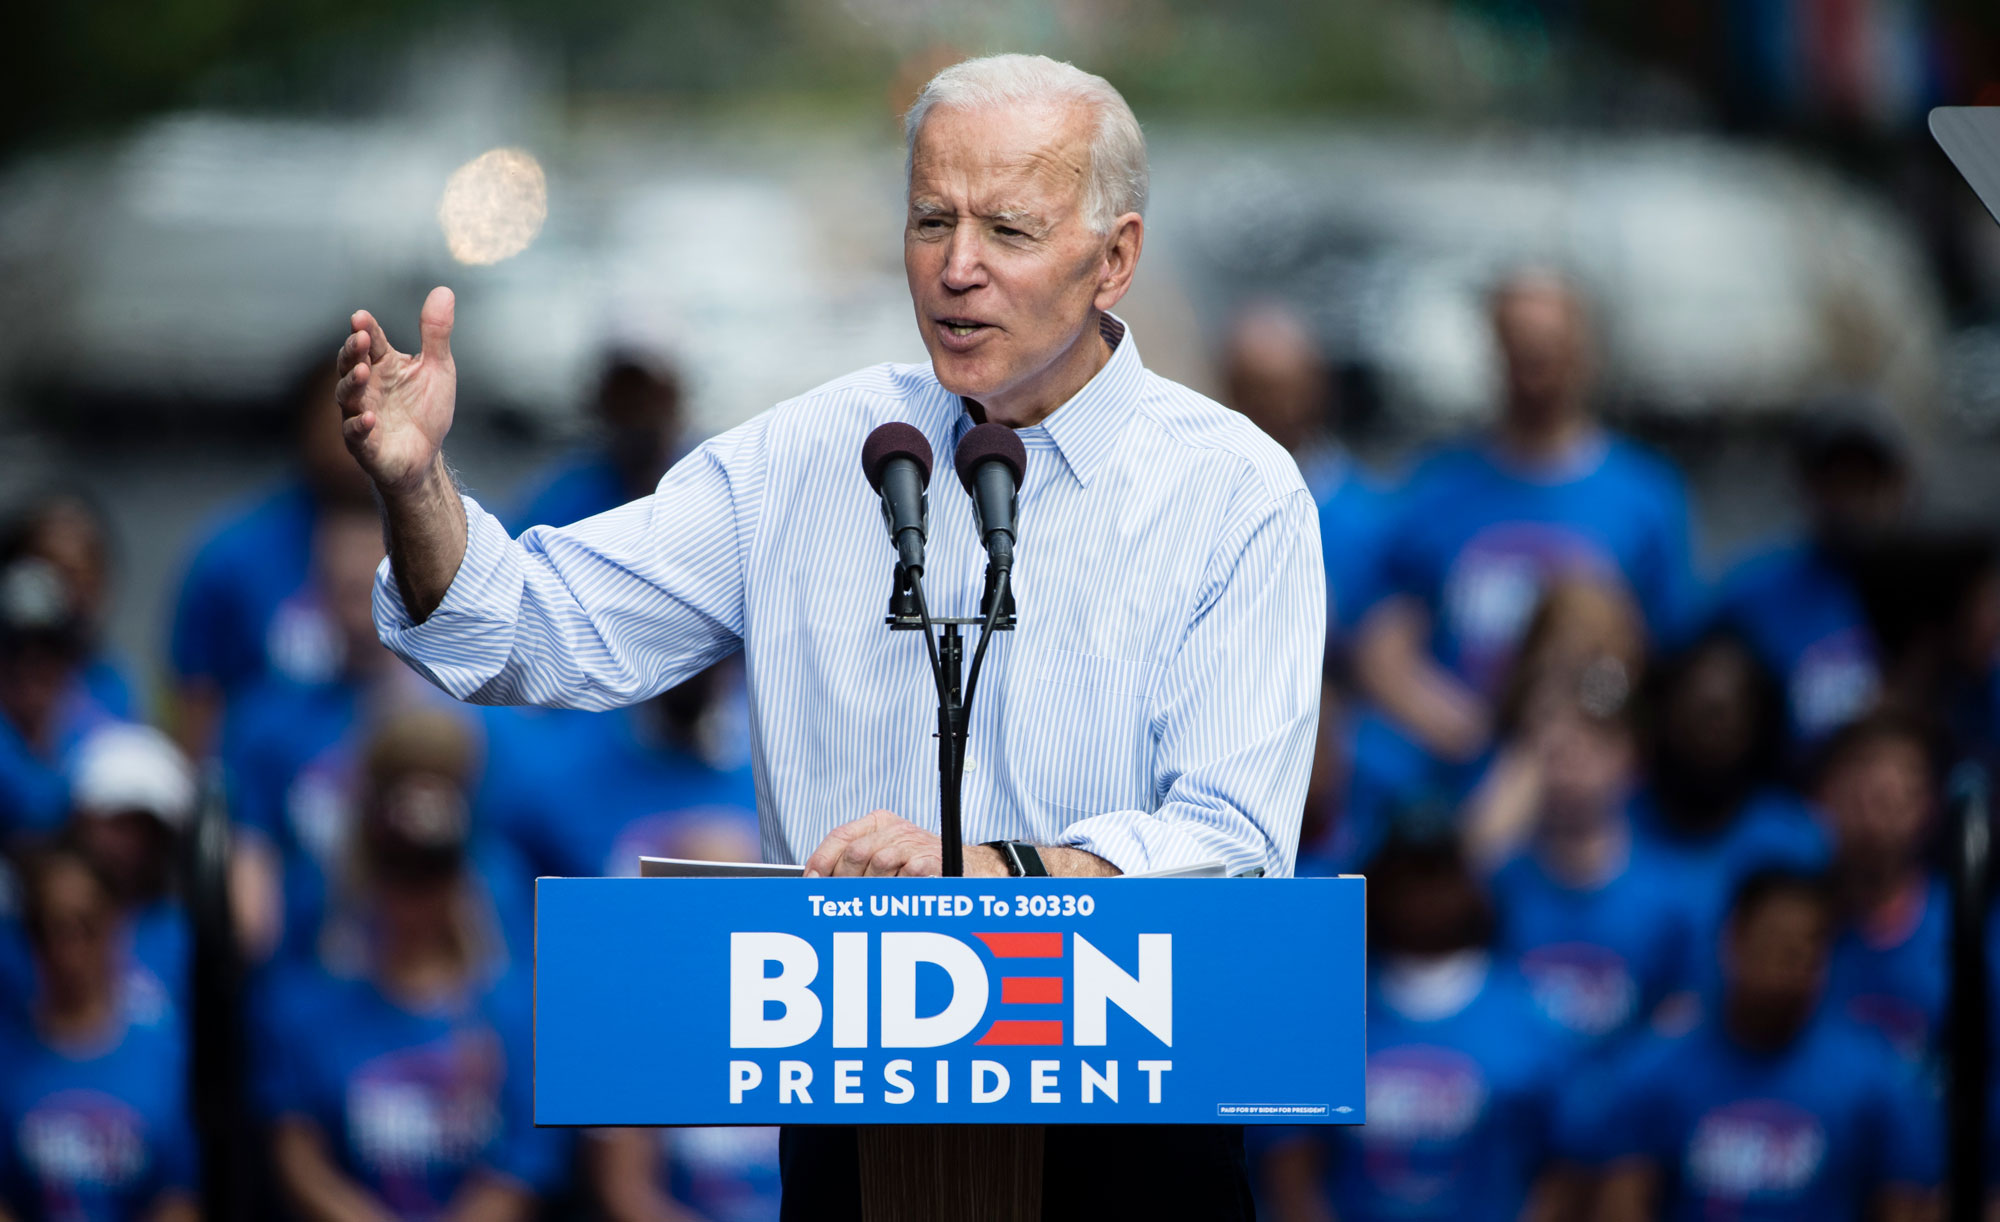 Joe Biden at a campaign rally